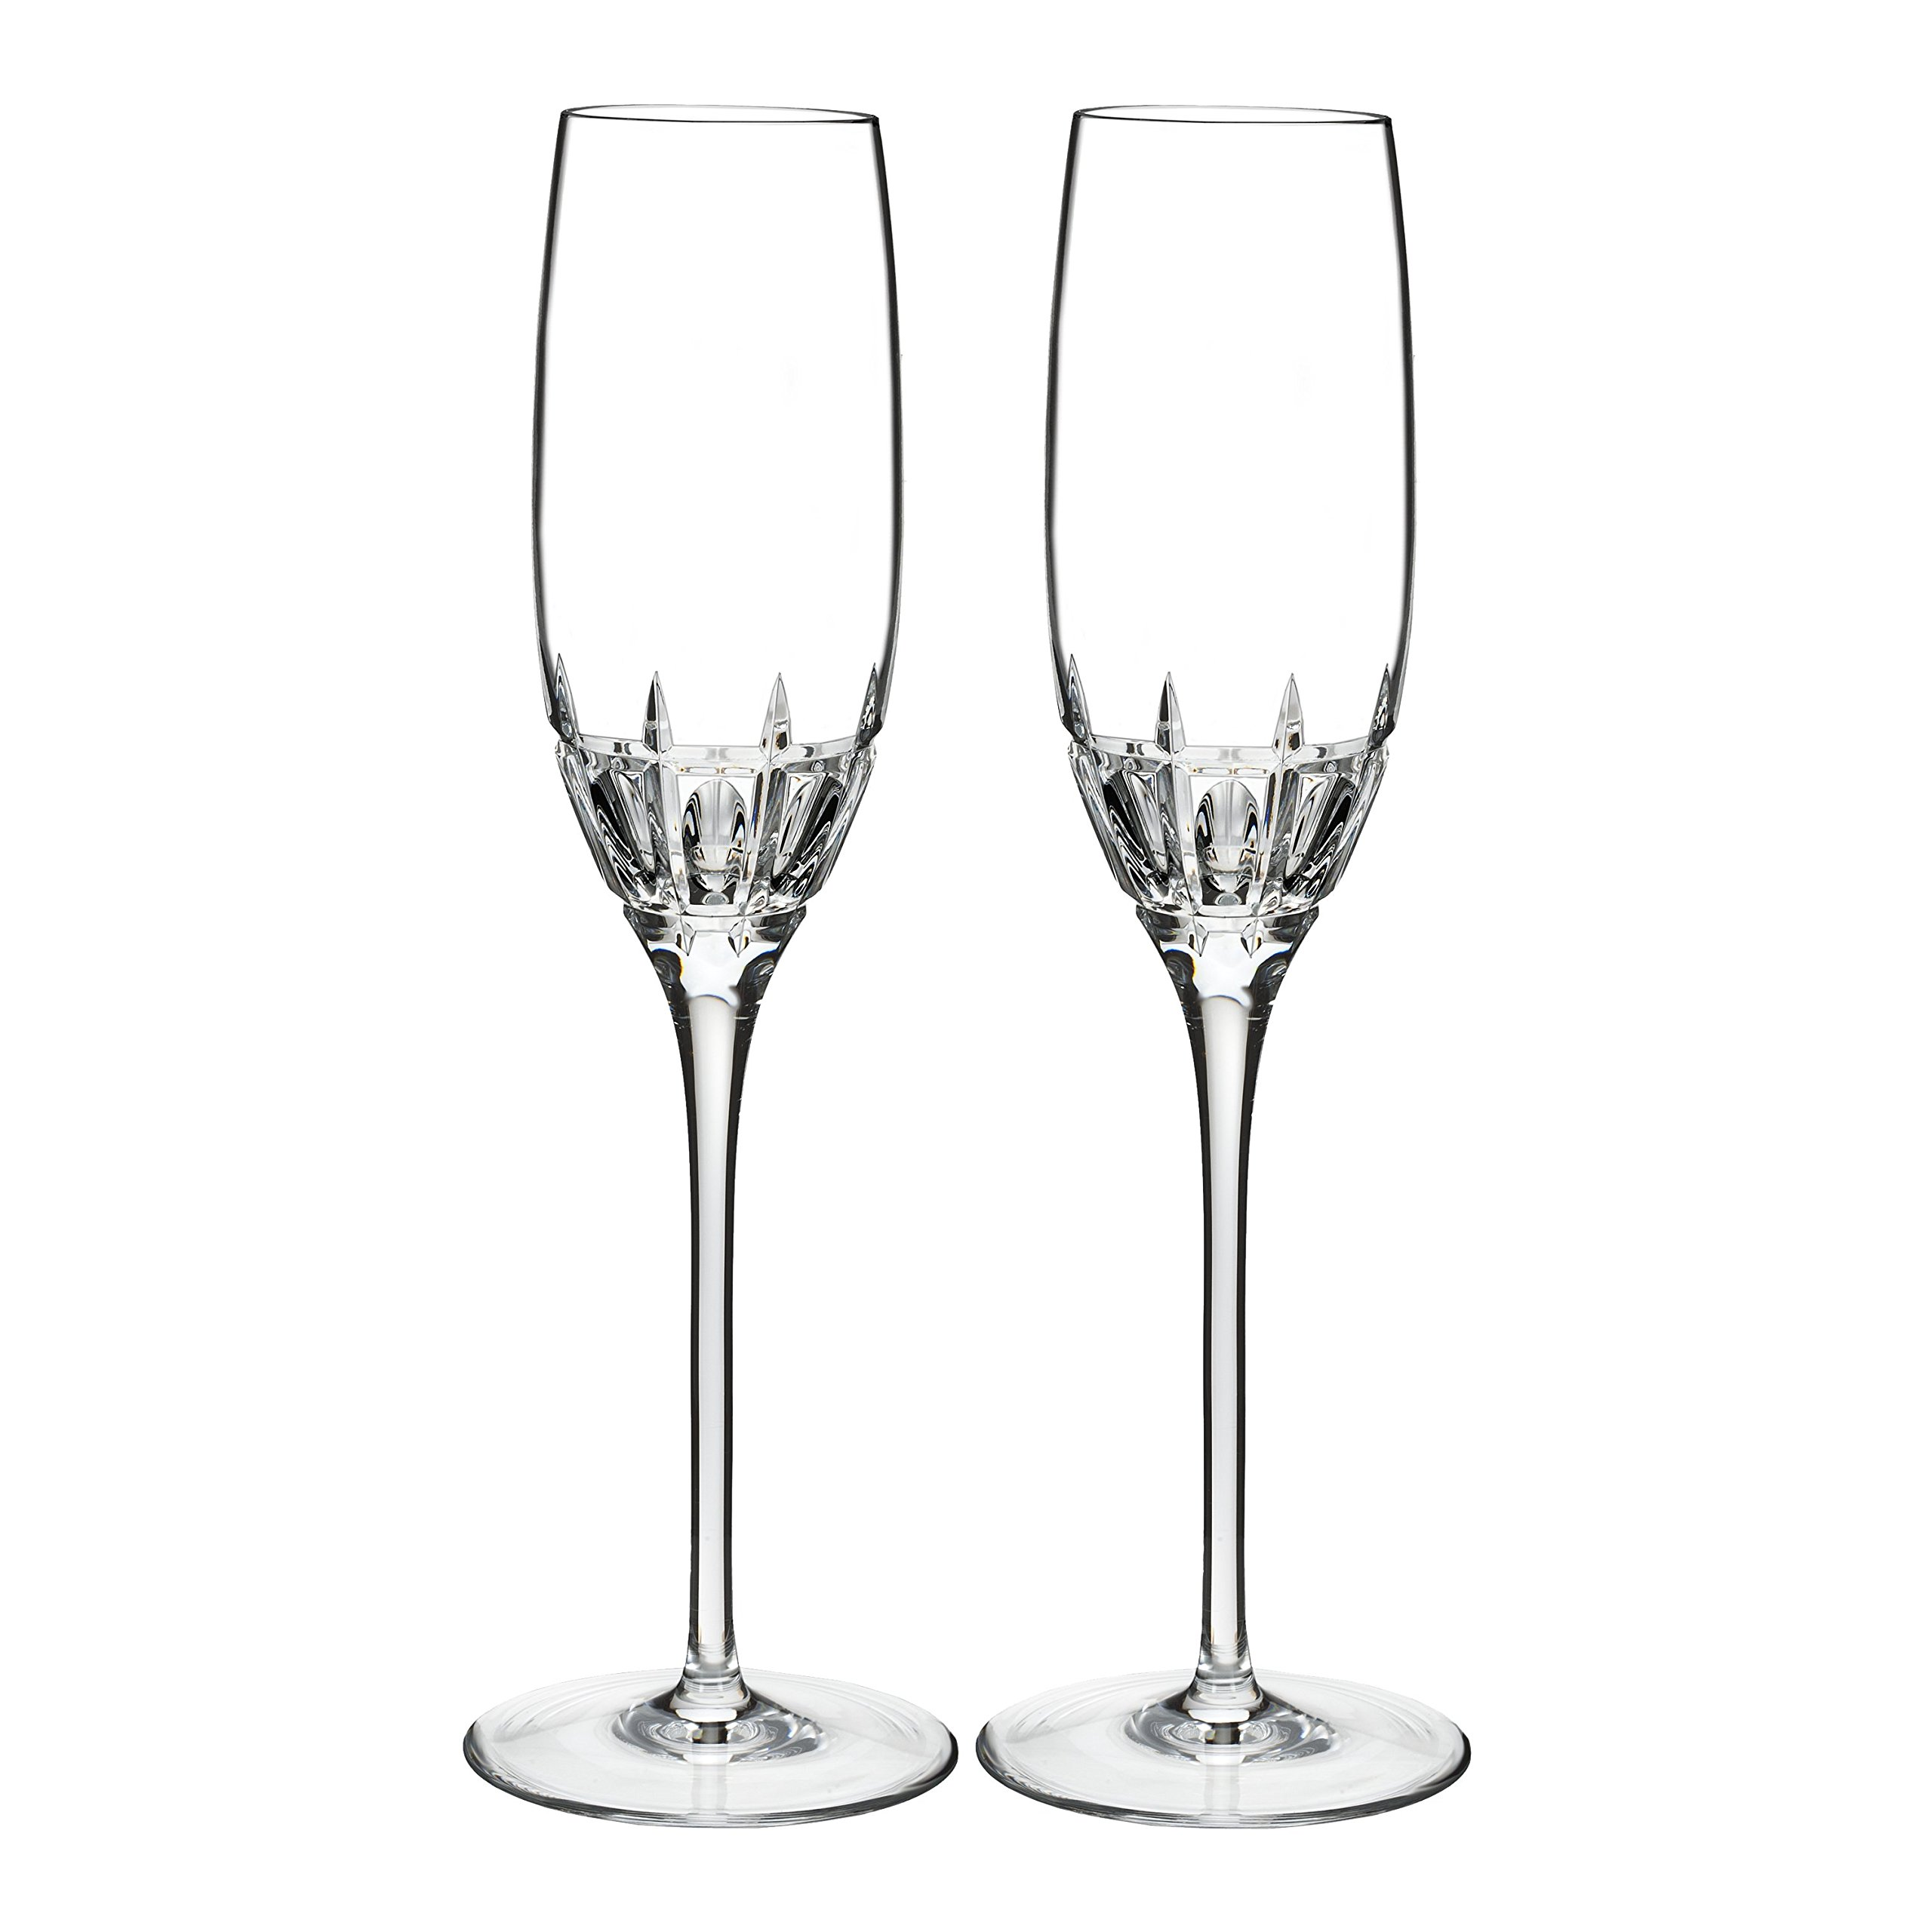 Marquis By Waterford, HARPER FLUTE 7 OZ, SET of 2 by Marquis By Waterford (Image #1)